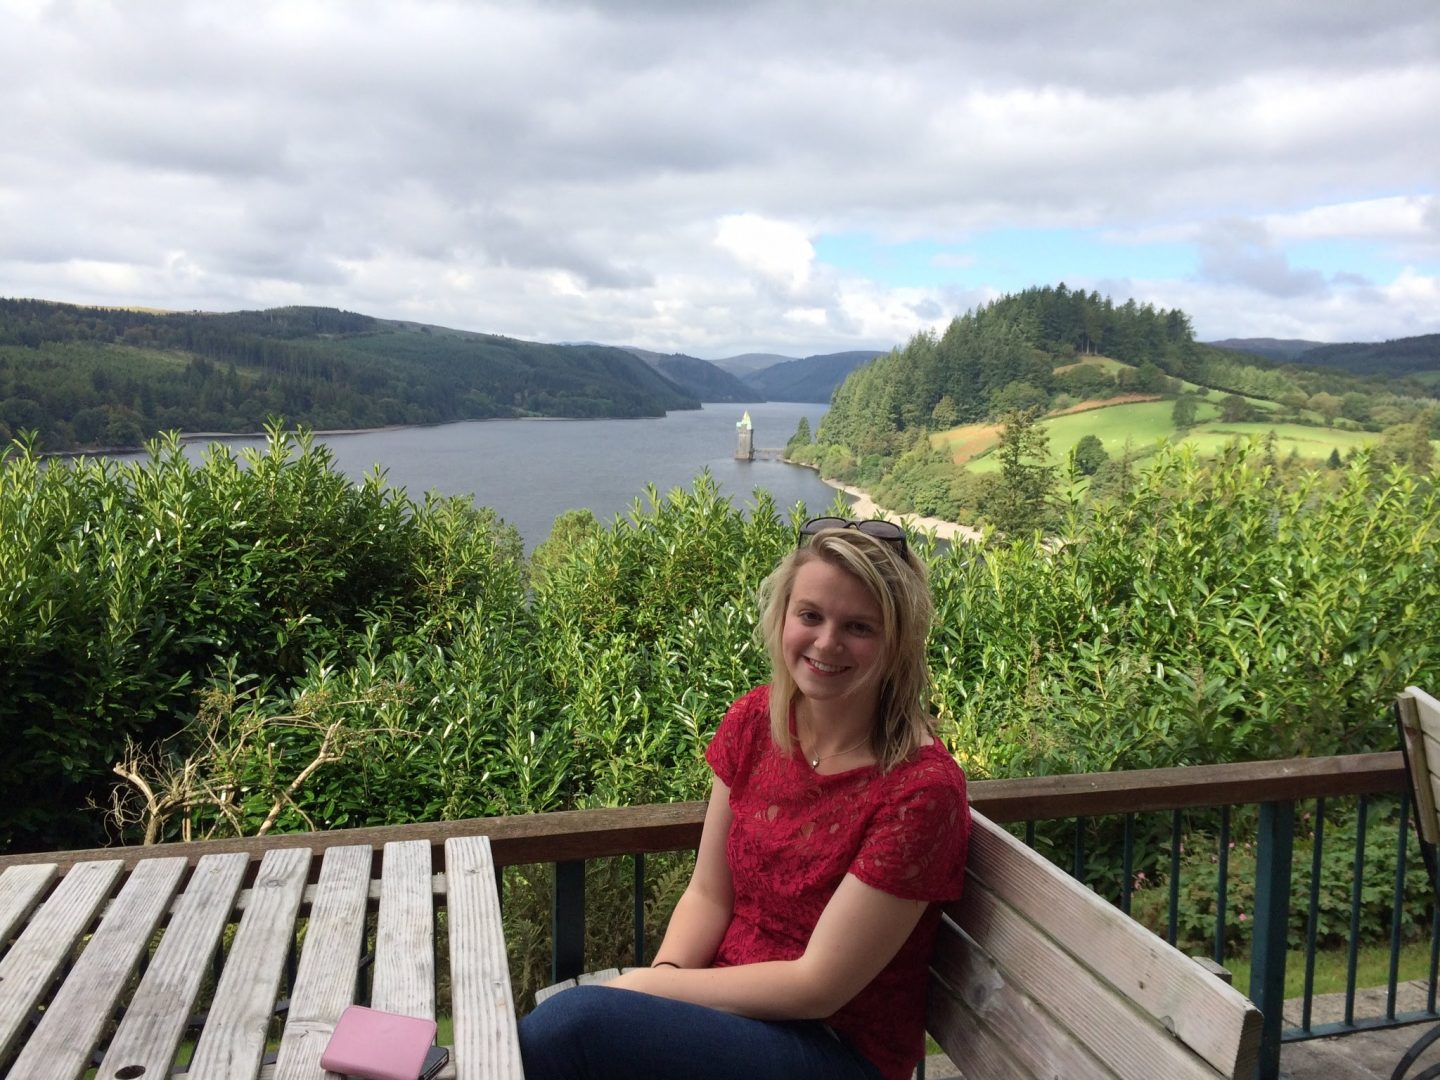 Enjoying the views over Lake Vyrnwy, Wales